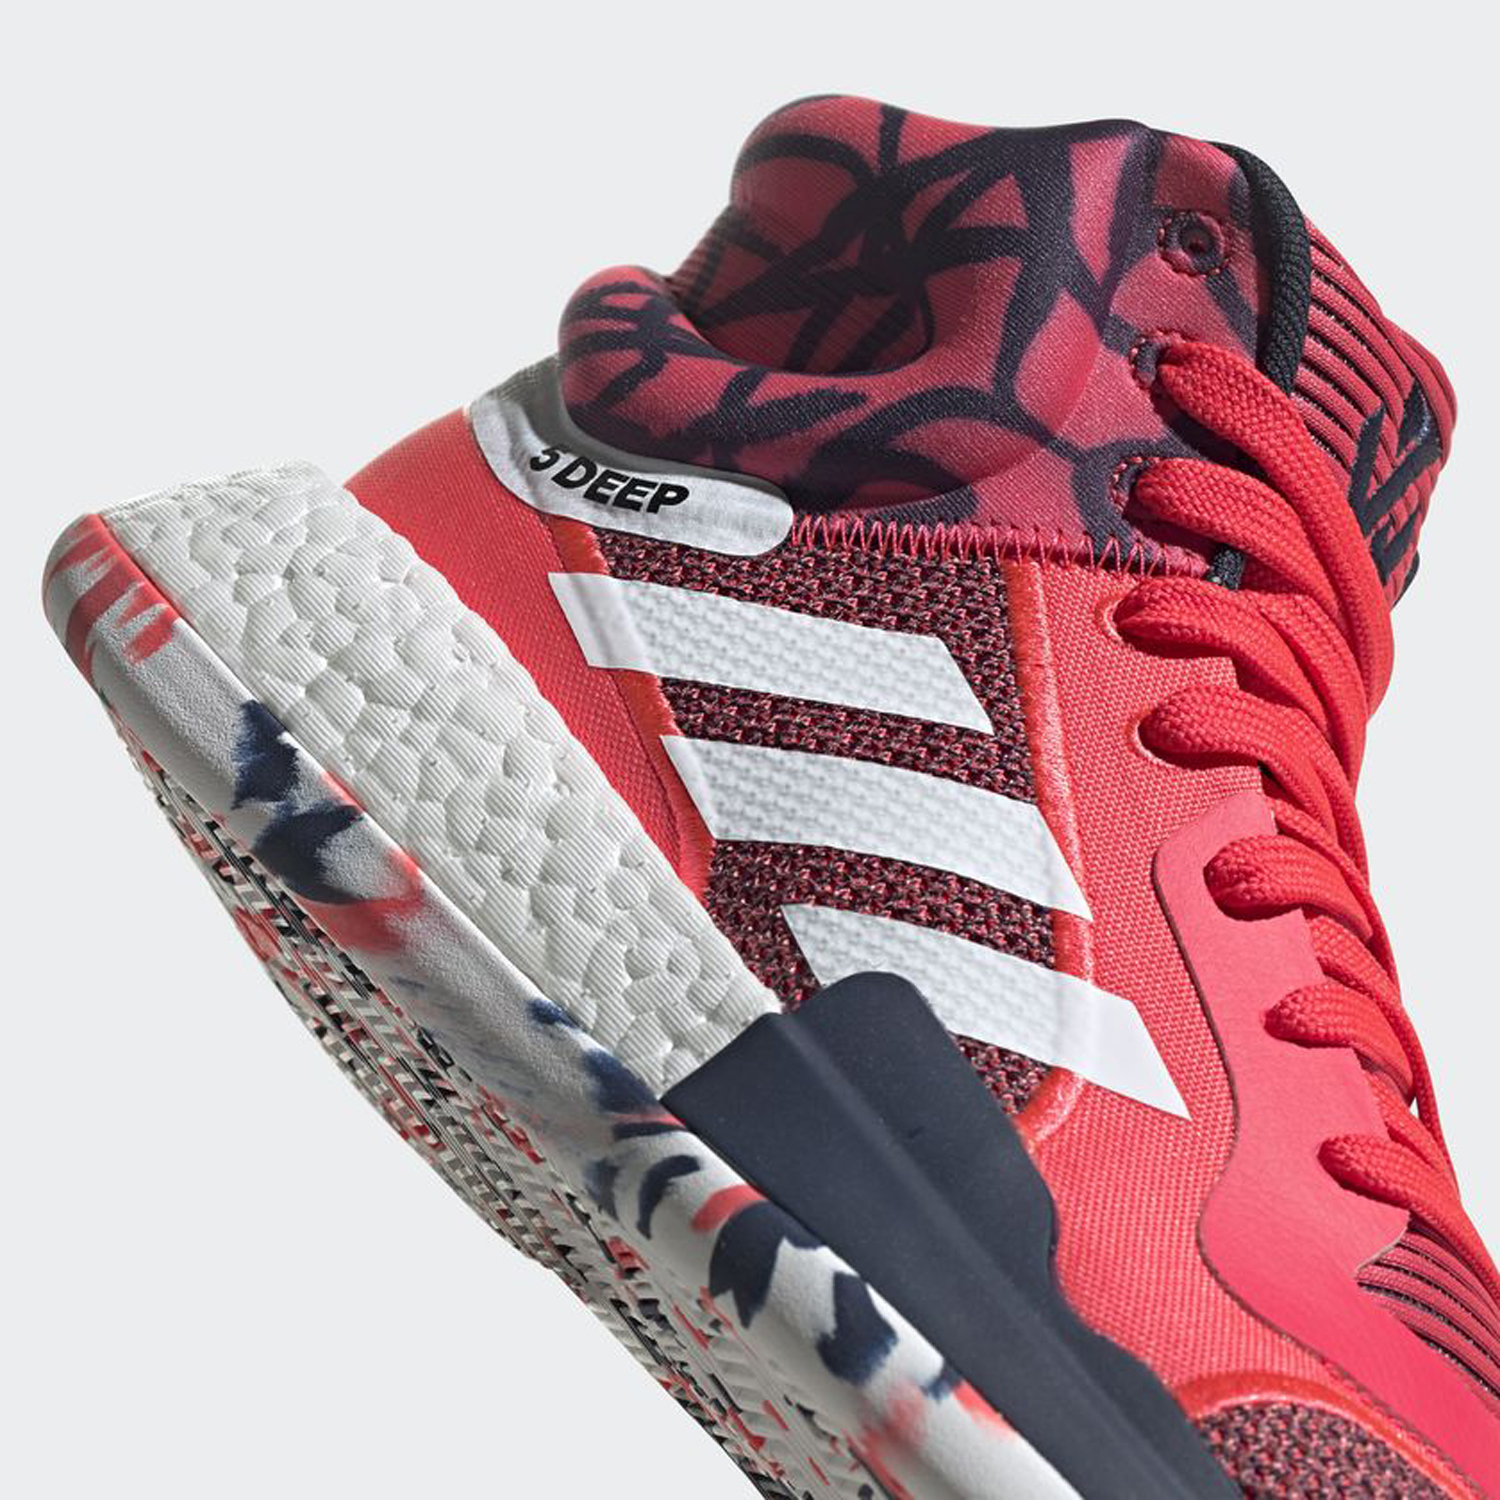 e80fba7e8ec adidas-Marquee-Boost-John-Wall-PE-Five-Deep-5 - WearTesters